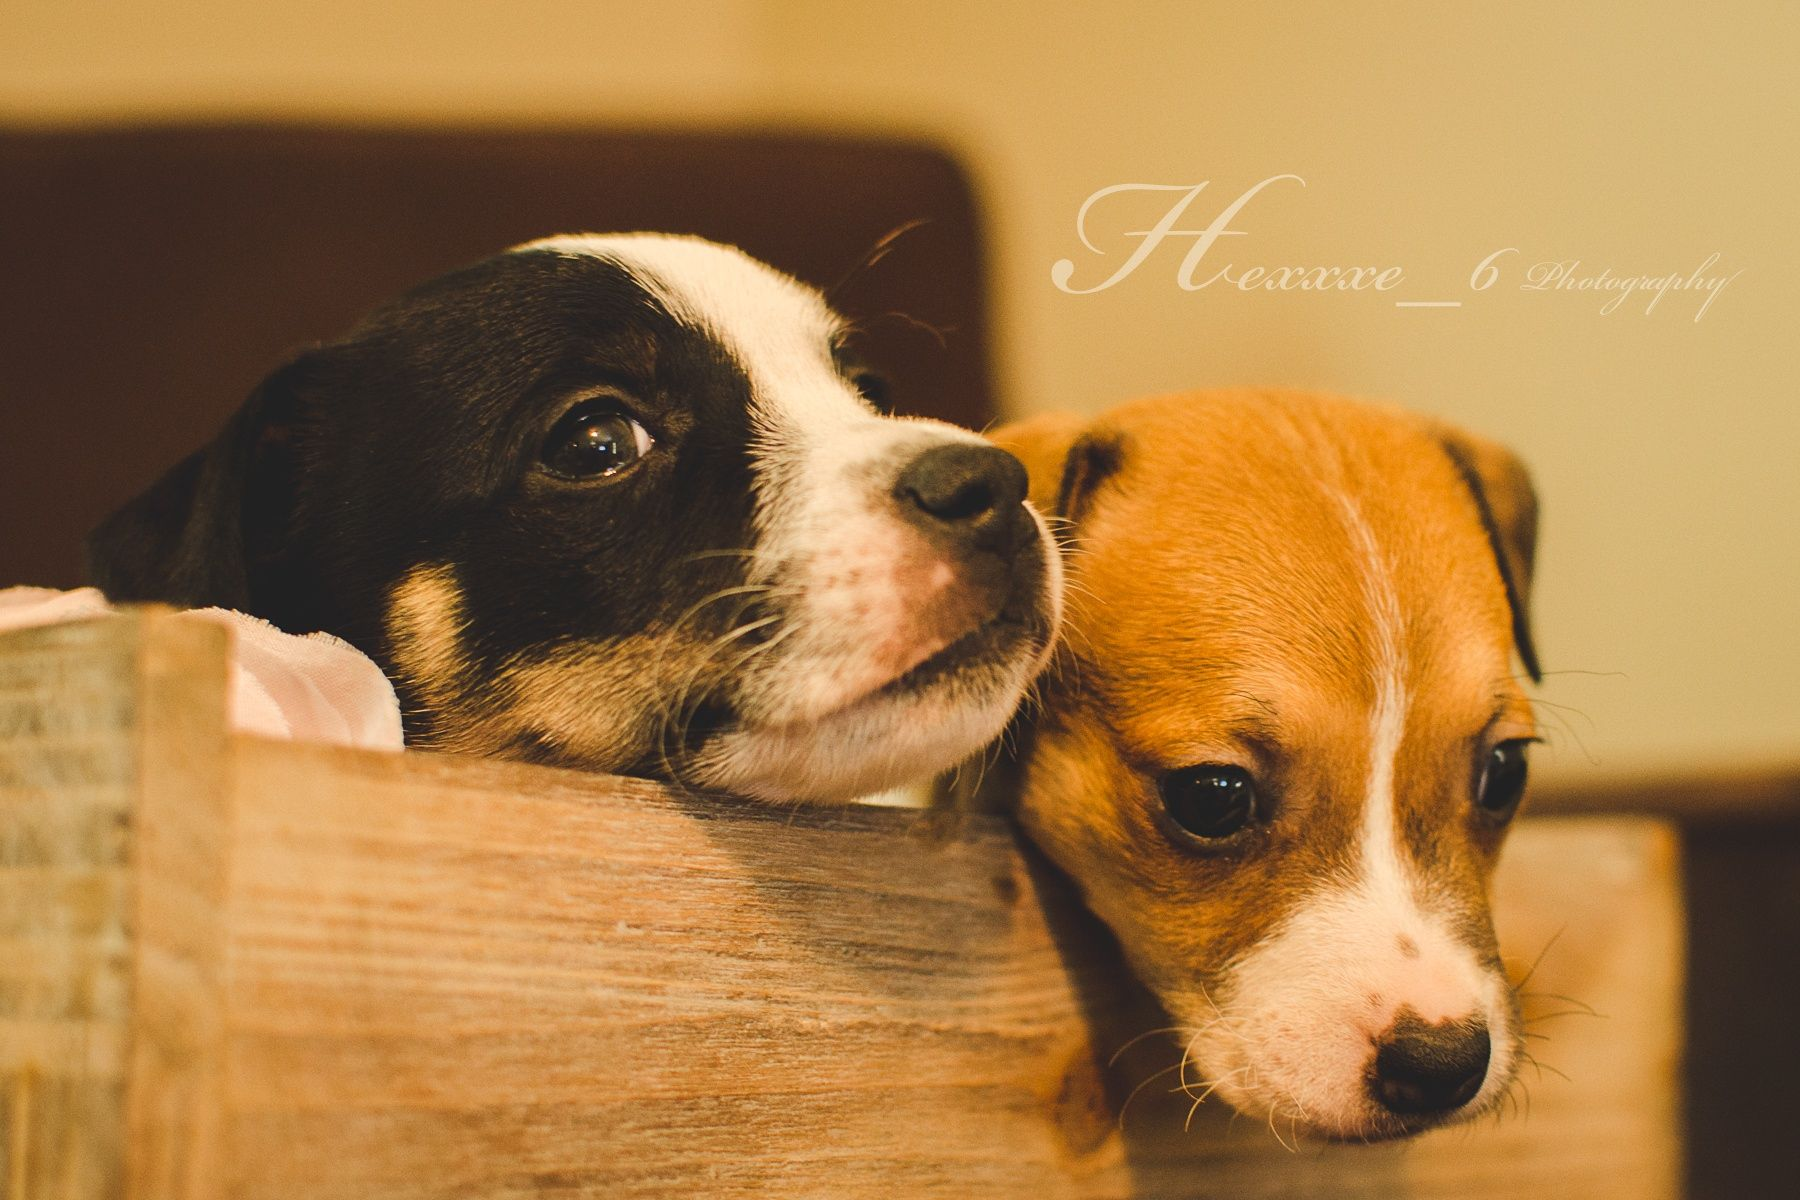 Puppies by Hexxxe_6 Photography on 500px #puppy #puppies #jack #russell #terrier #dog #photography #style